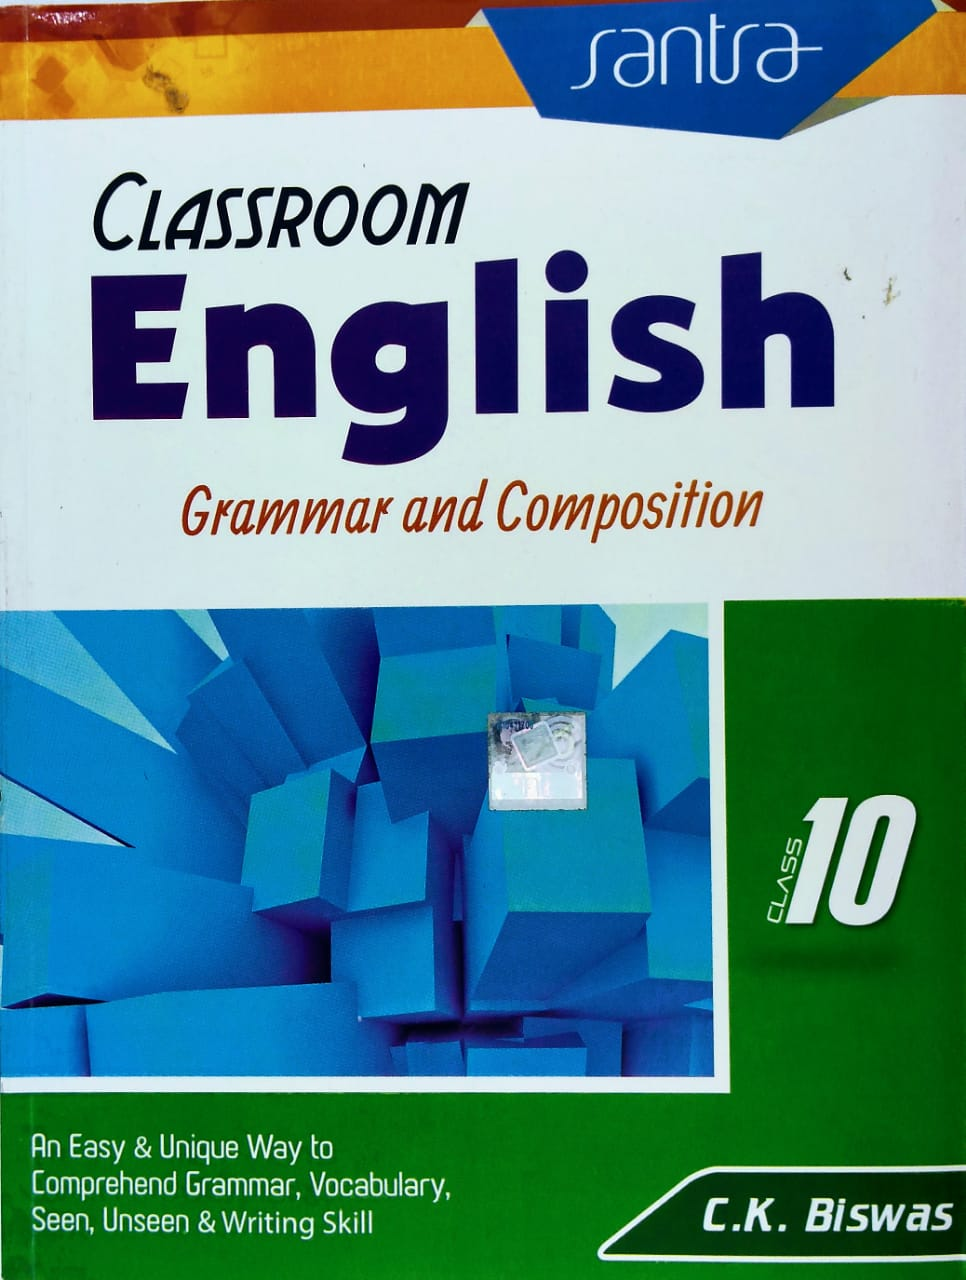 CLASSROOM English Grammar and Composition Class 10